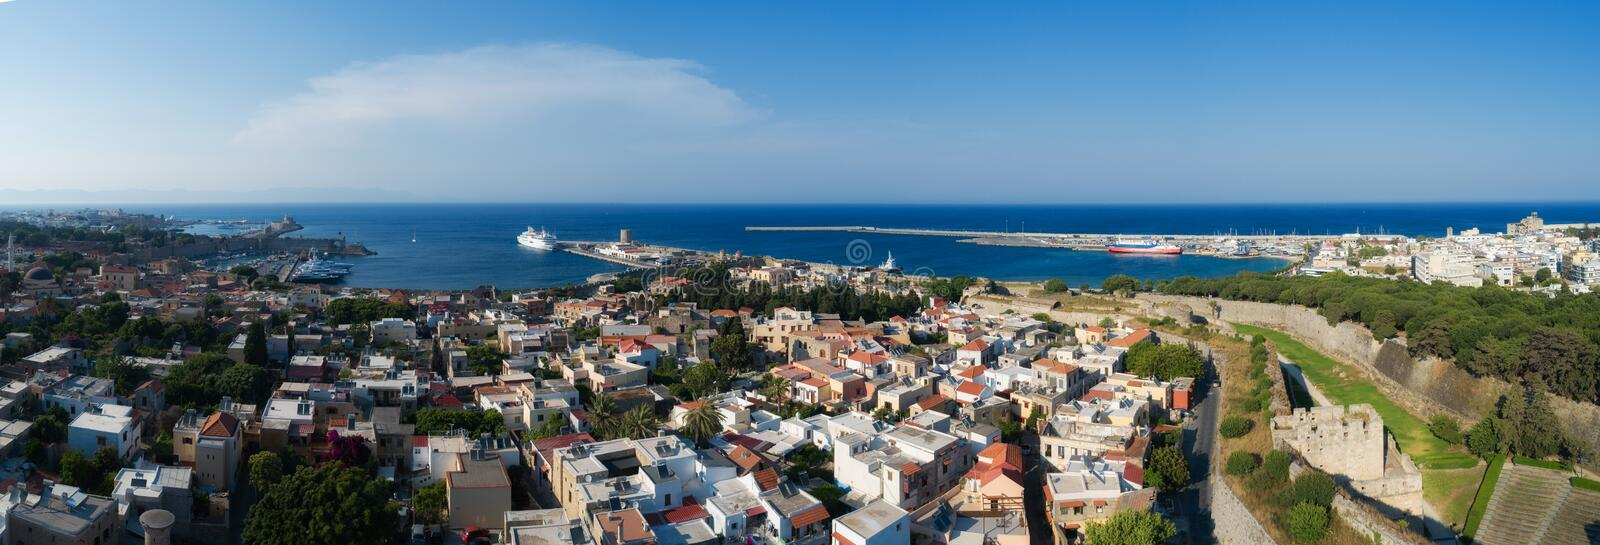 Mandraki port of Rhodes city harbor aerial panoramic view in Rhodes island in Greece. Drone shot royalty free stock images